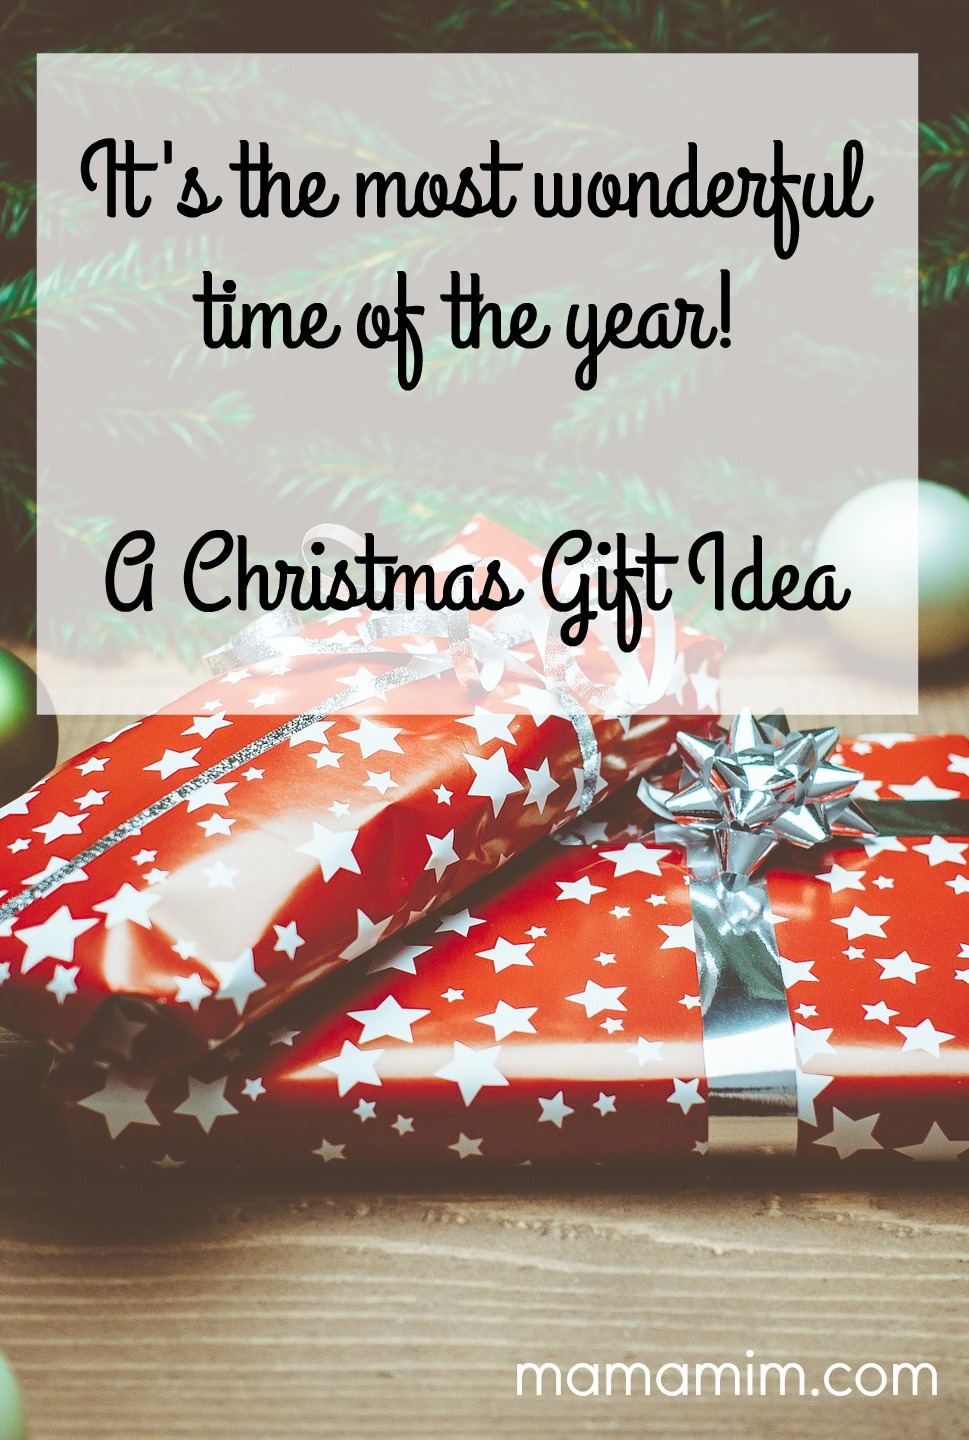 It's the most wonderful time of the year! A Christmas Gift idea - www.mamamim.com